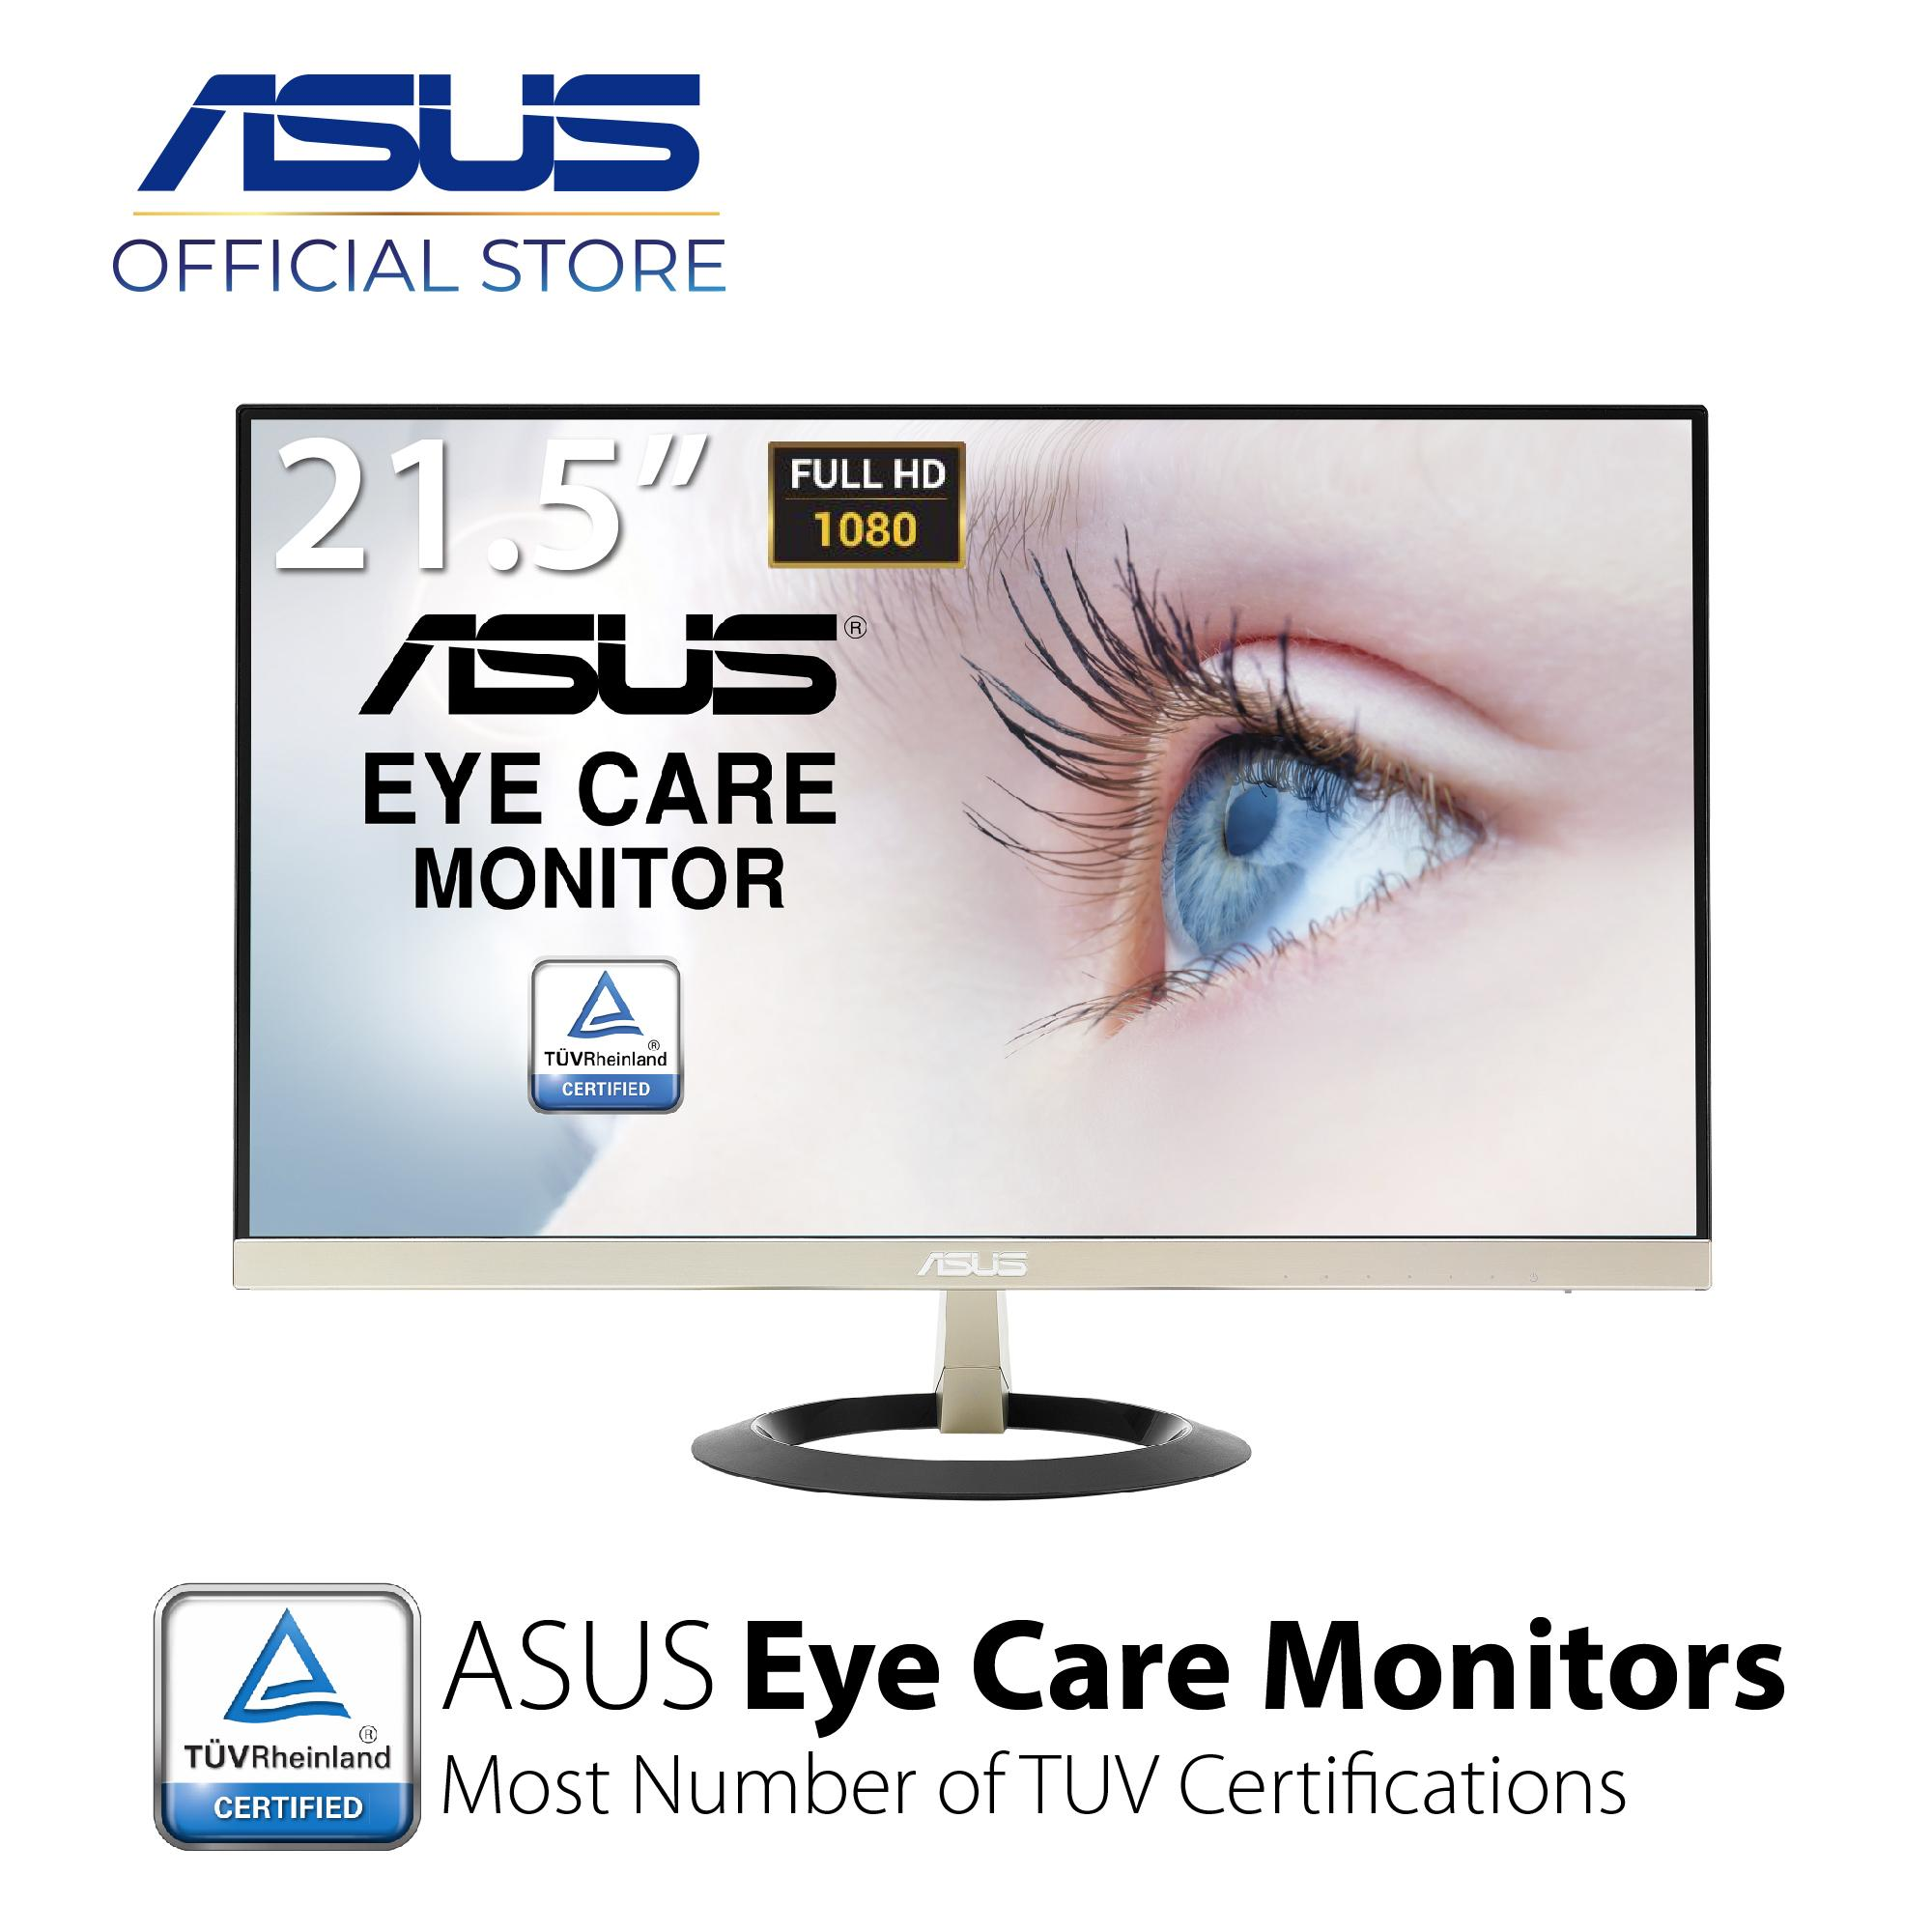 Asus Philippines Pc Monitors For Sale Prices Reviews Lazada Monitor Vc239h Eye Care Frameless 23 Full Hd Ips Speaker Tuv Vz229h 215 Inch